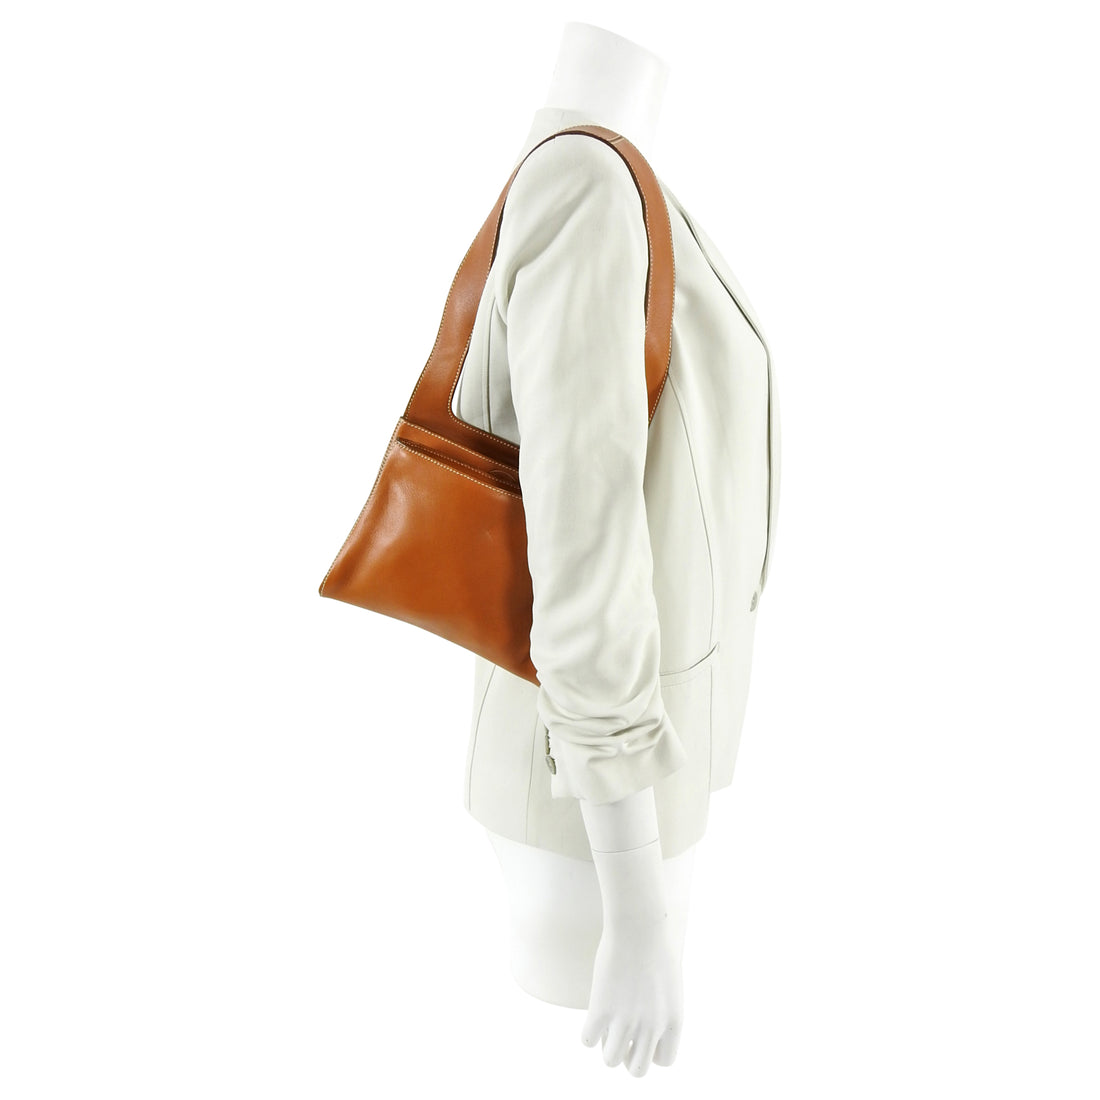 Tods Tan Small Leather Shoulder Bag